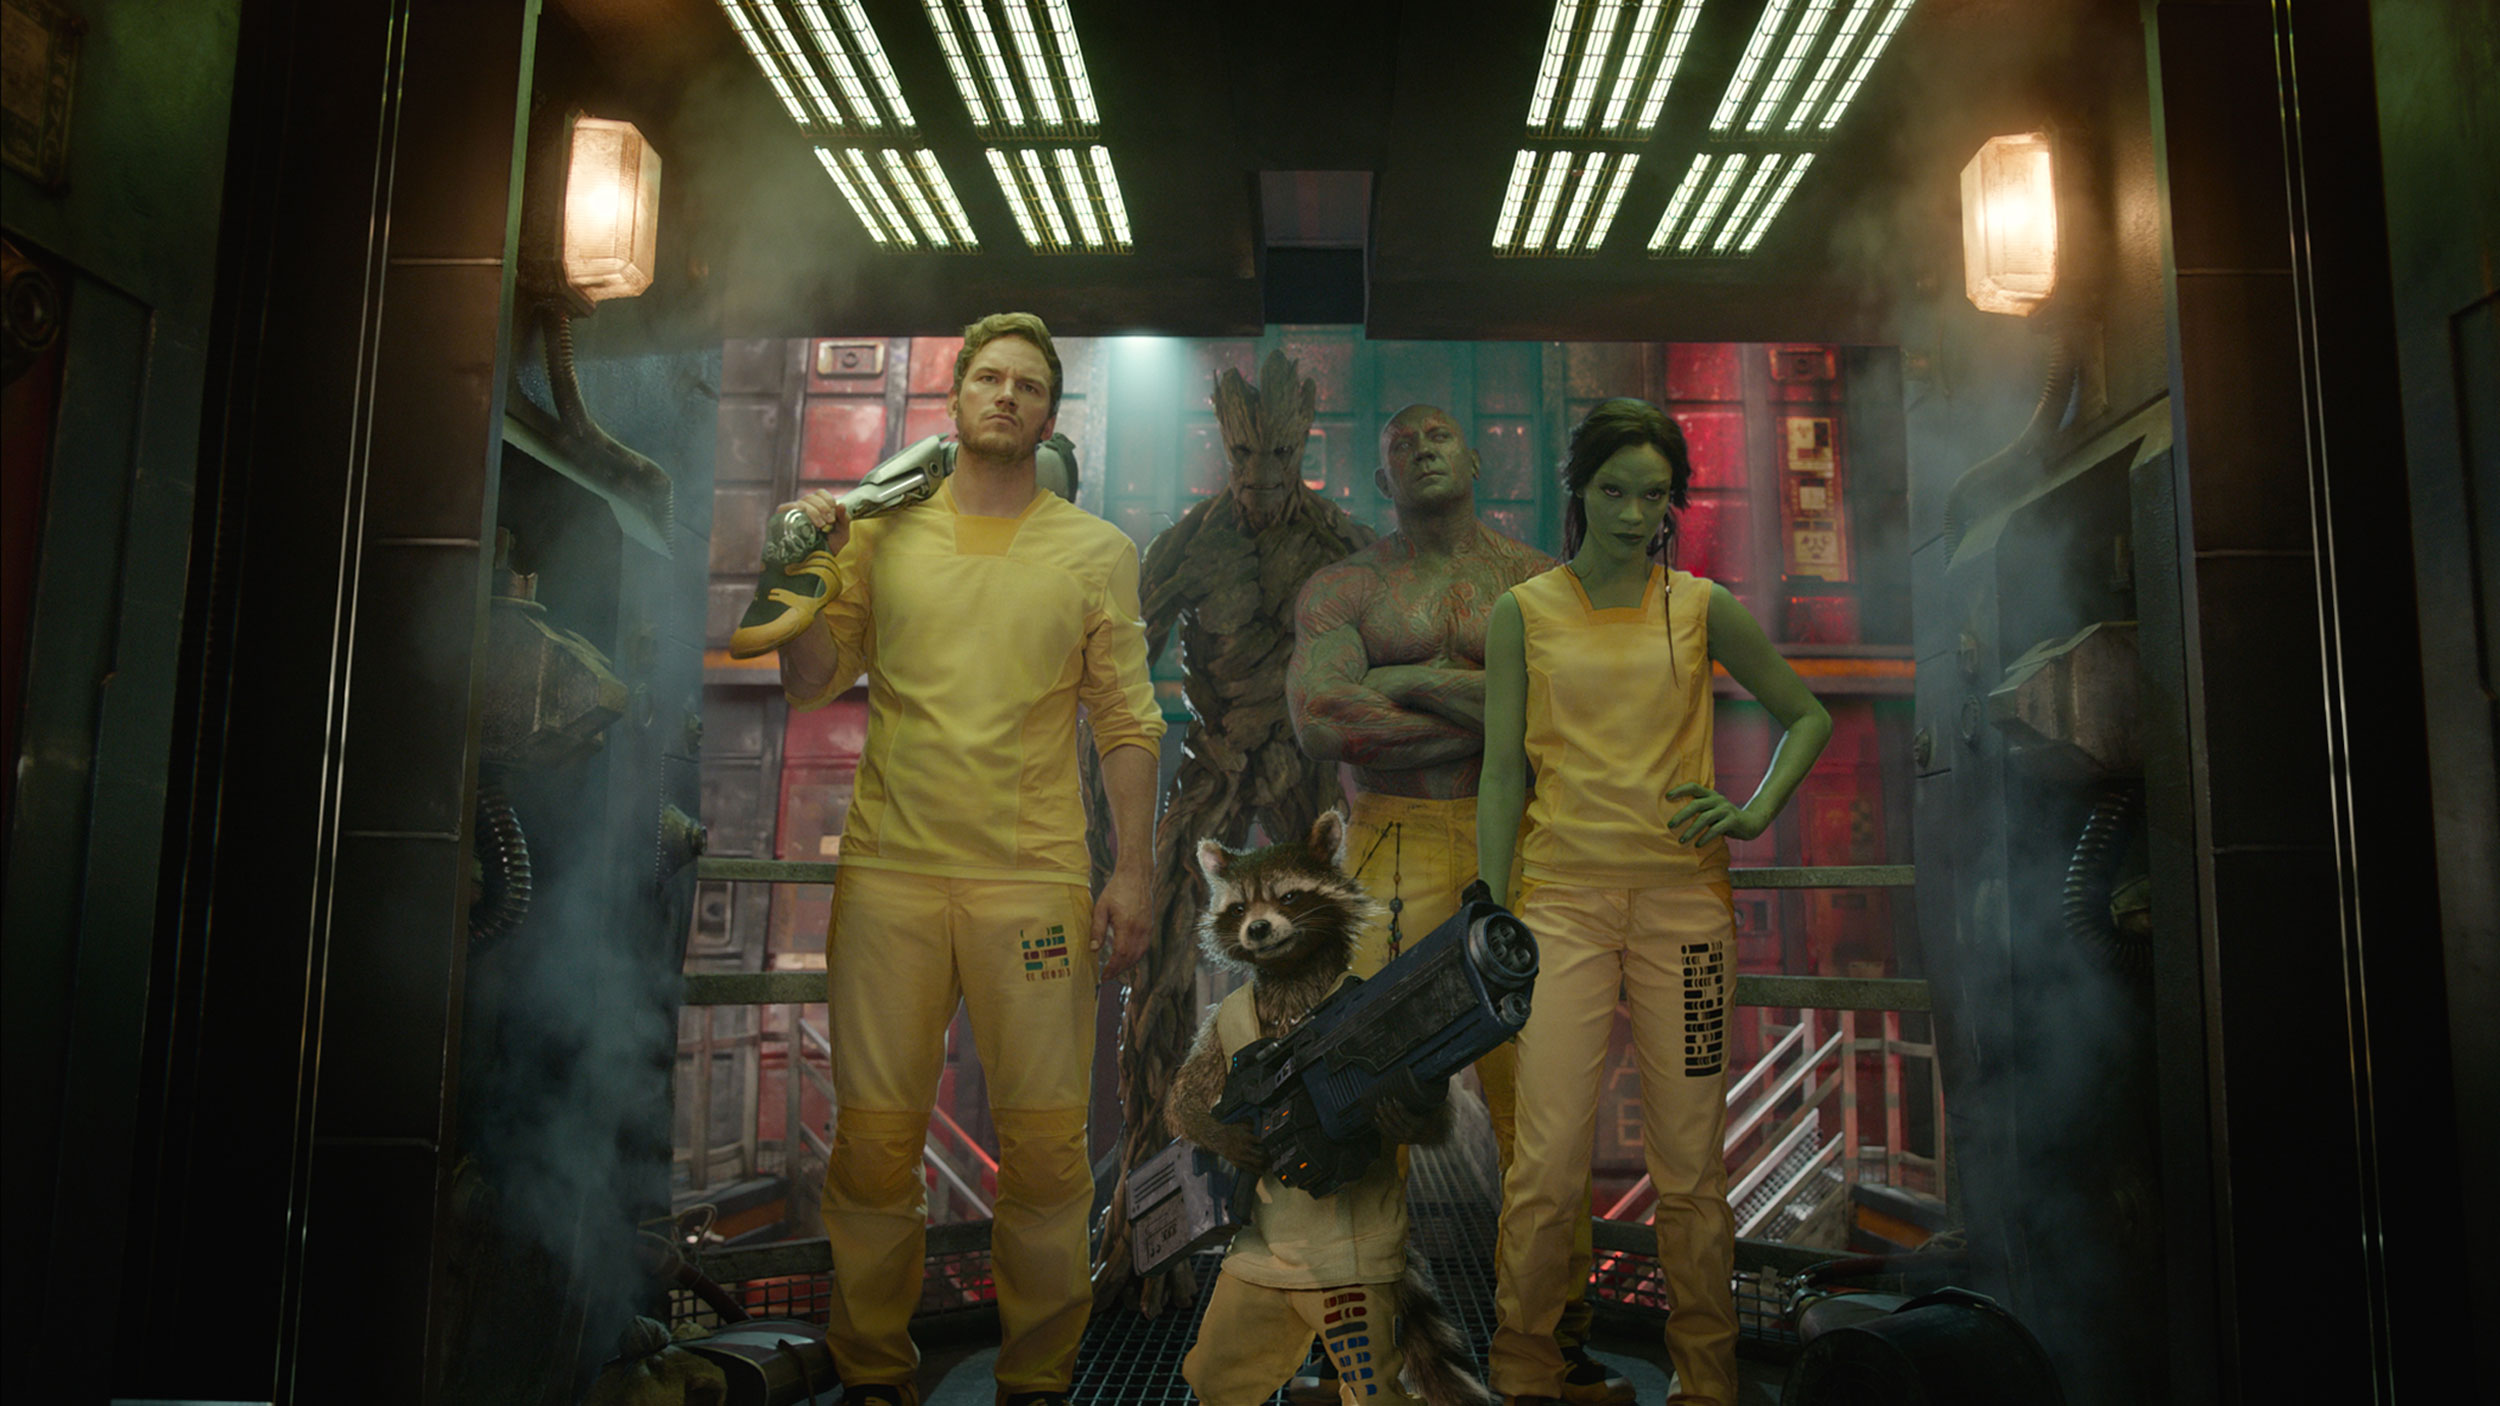 Stream Guardians Of The Galaxy i Danmark